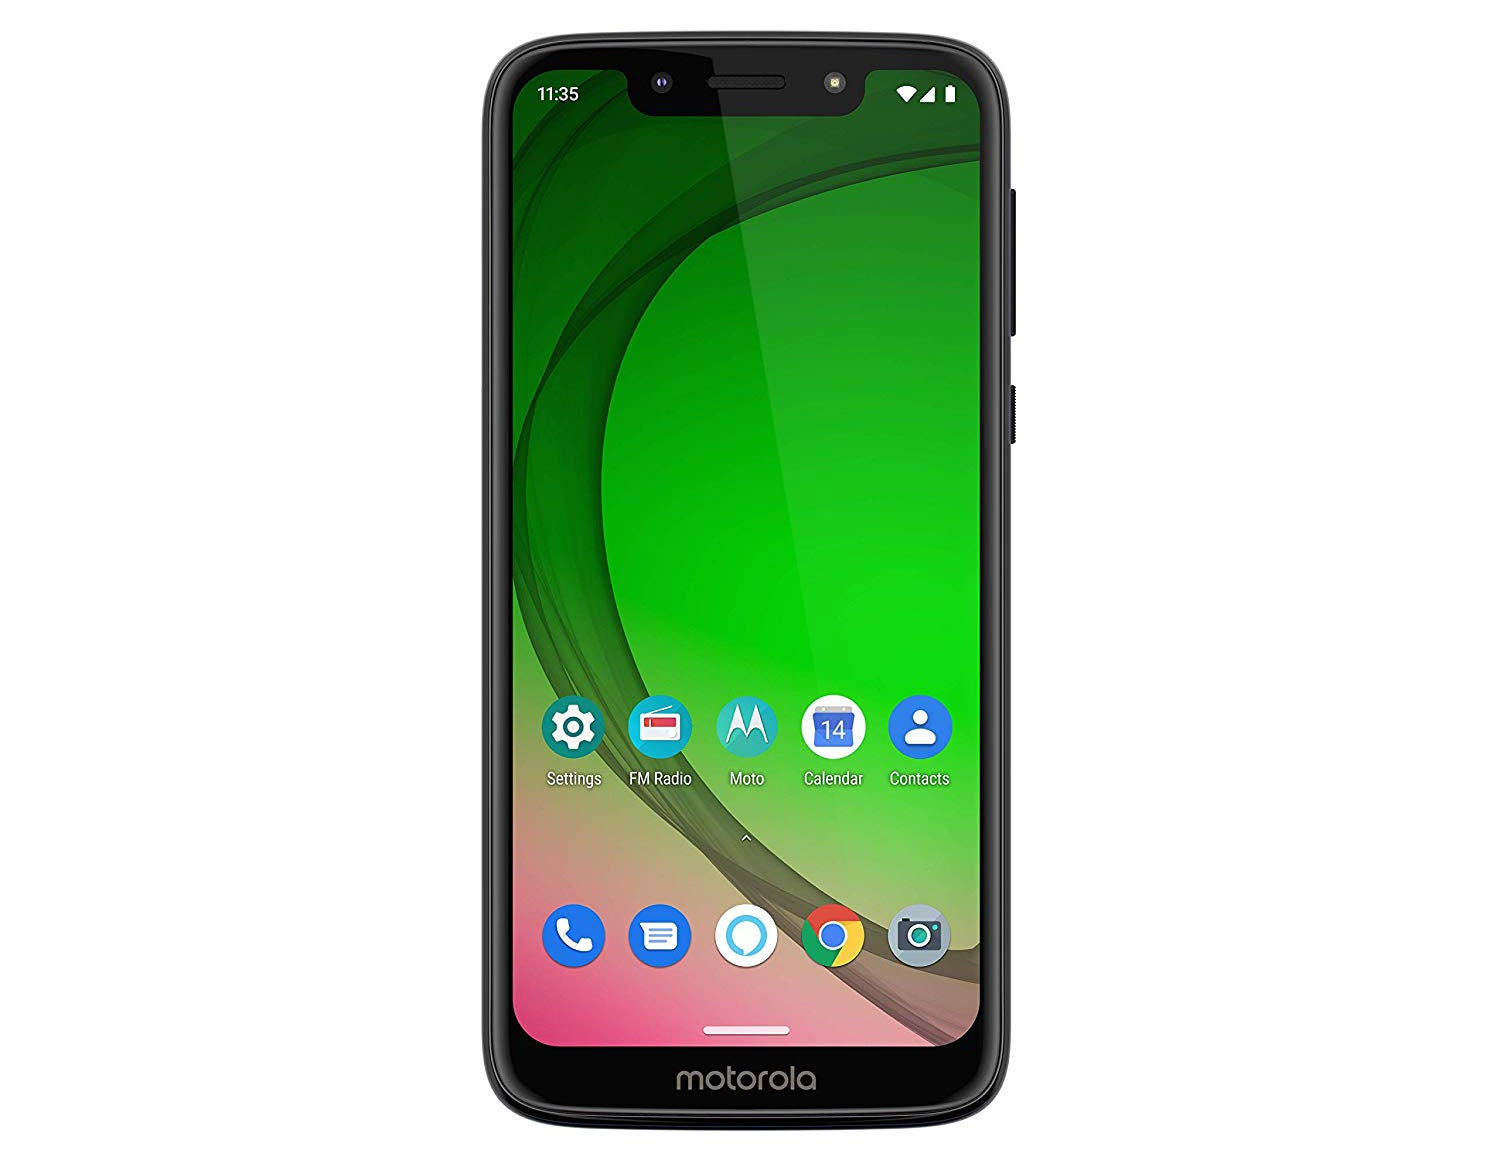 Motorola's G7 Play offers great value and comes in at under six inches of screen real estate.